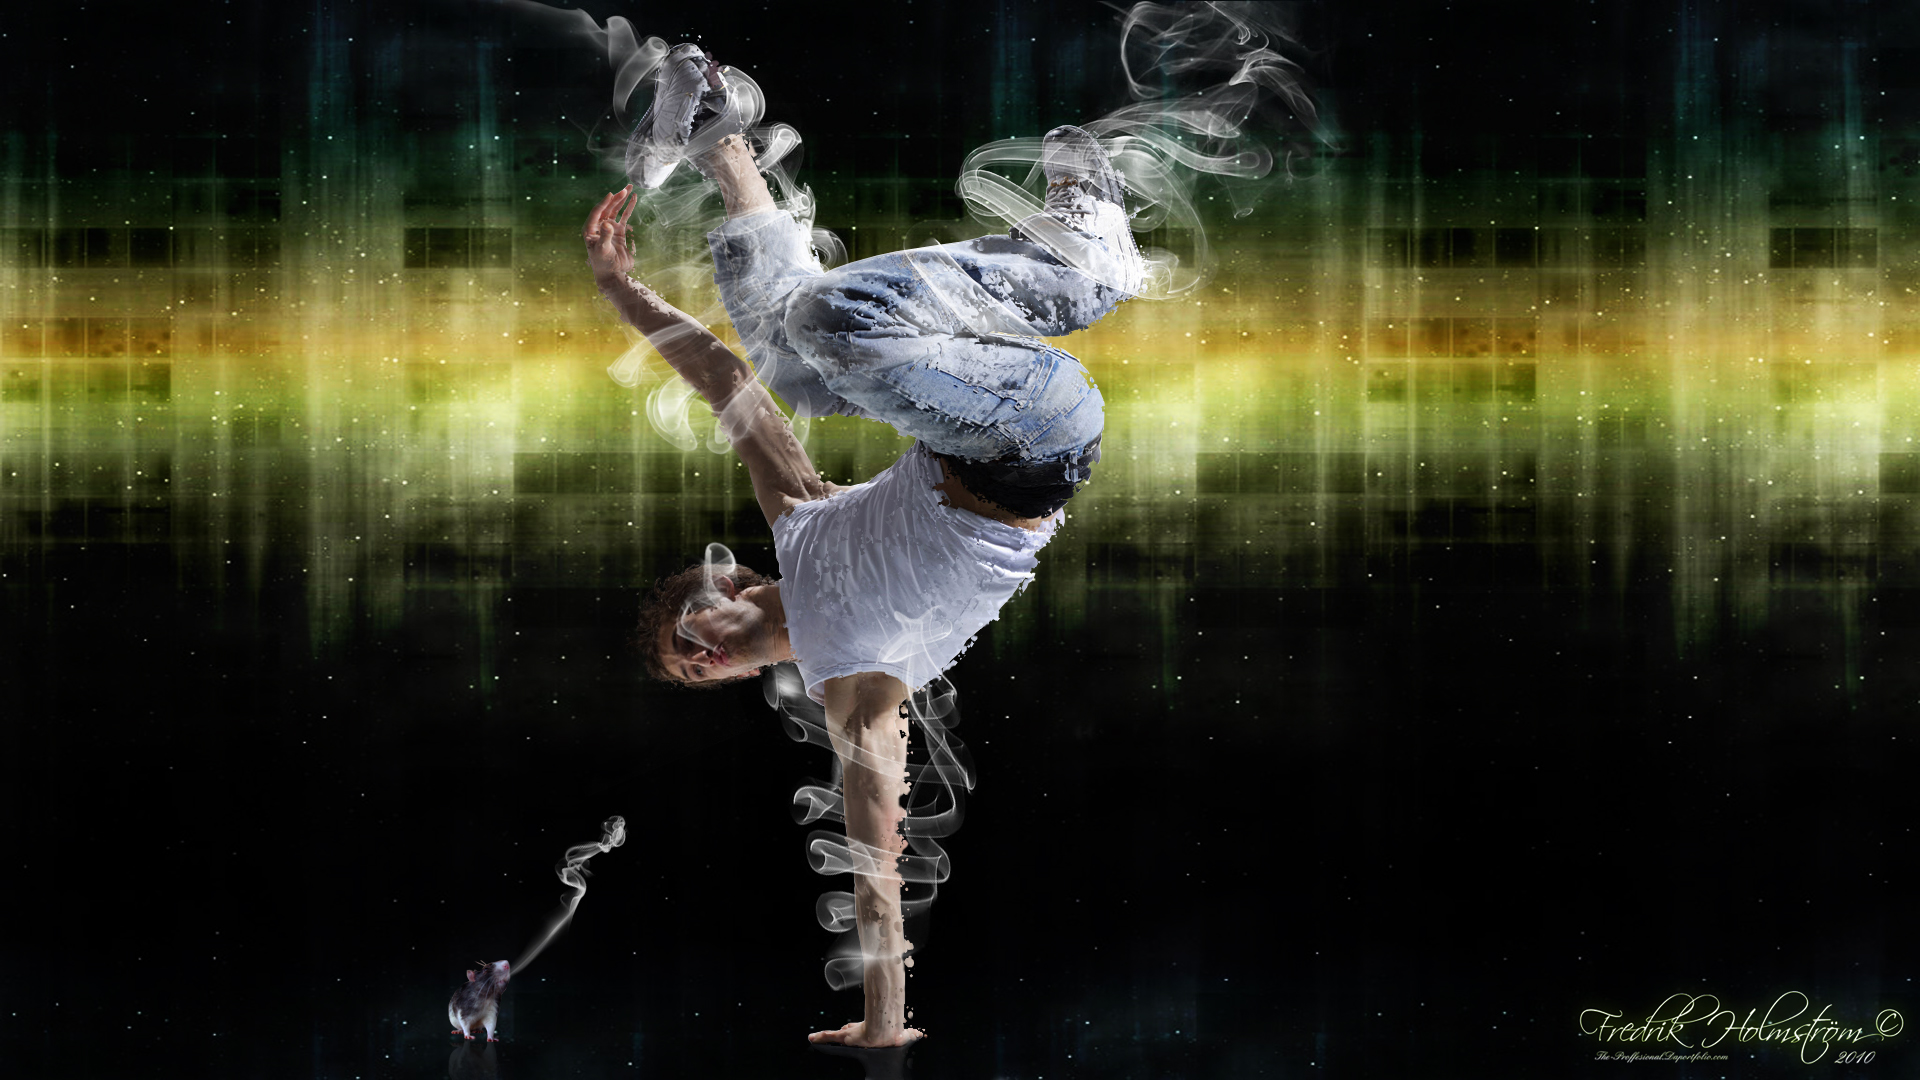 Street dancer wallpaper by The proffesional 1920x1080